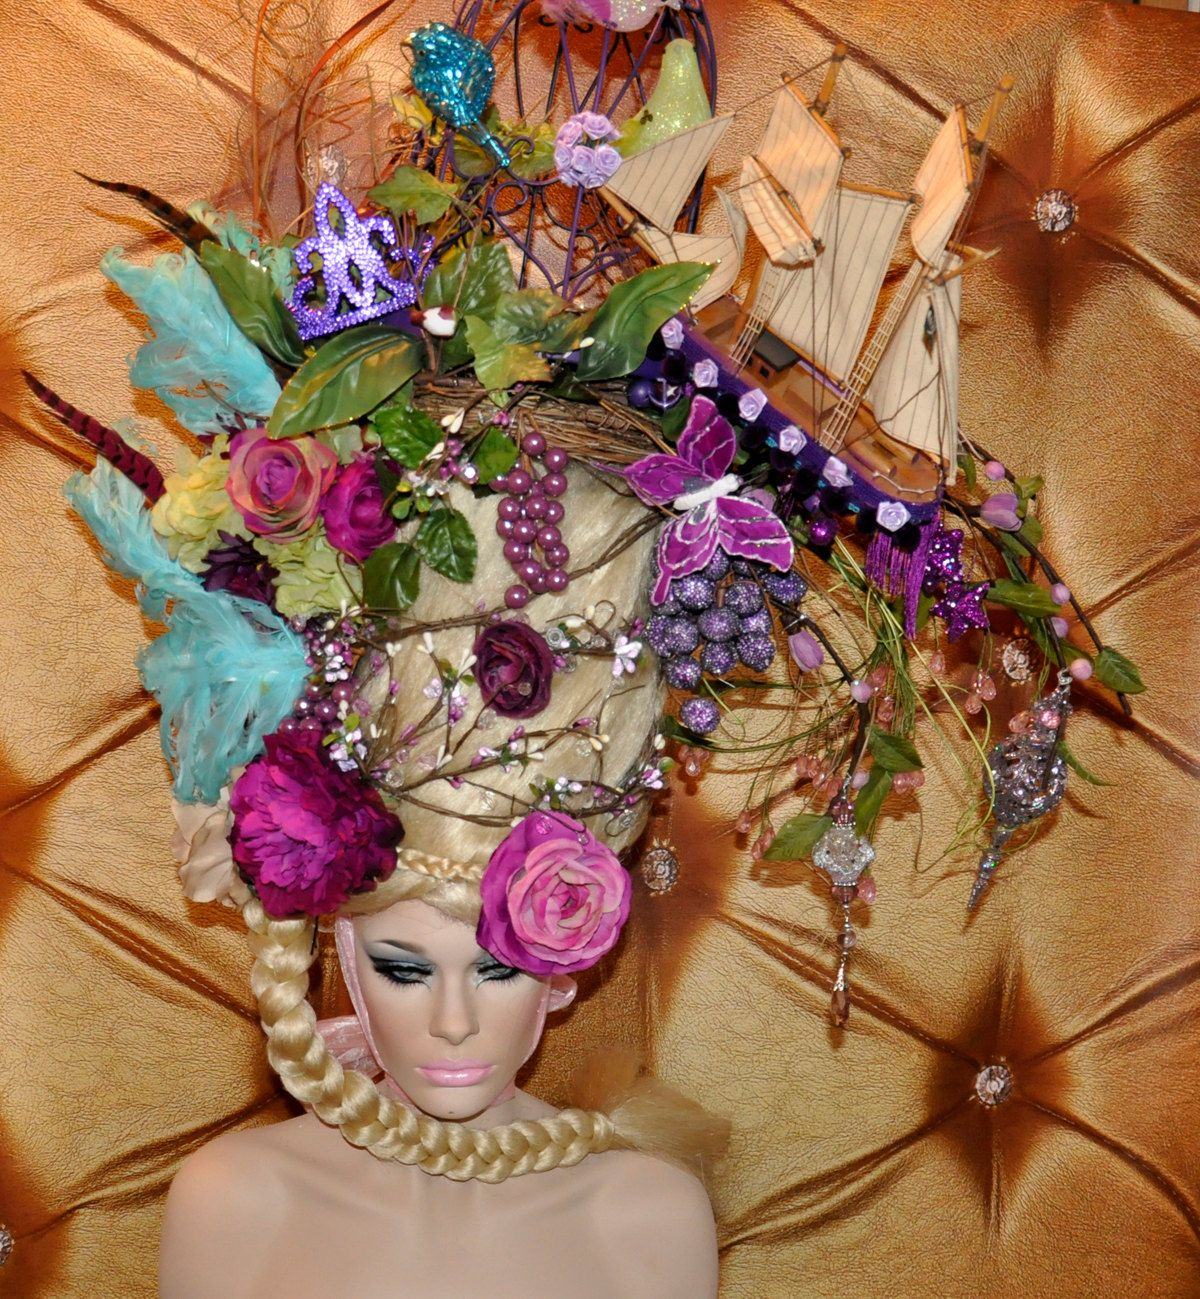 MADE TO ORDER Marie Antoinette butterfly bird cage sail boat headdress headpiece wig fantasy burlesque french baroque roccoco. $849.00, via Etsy.